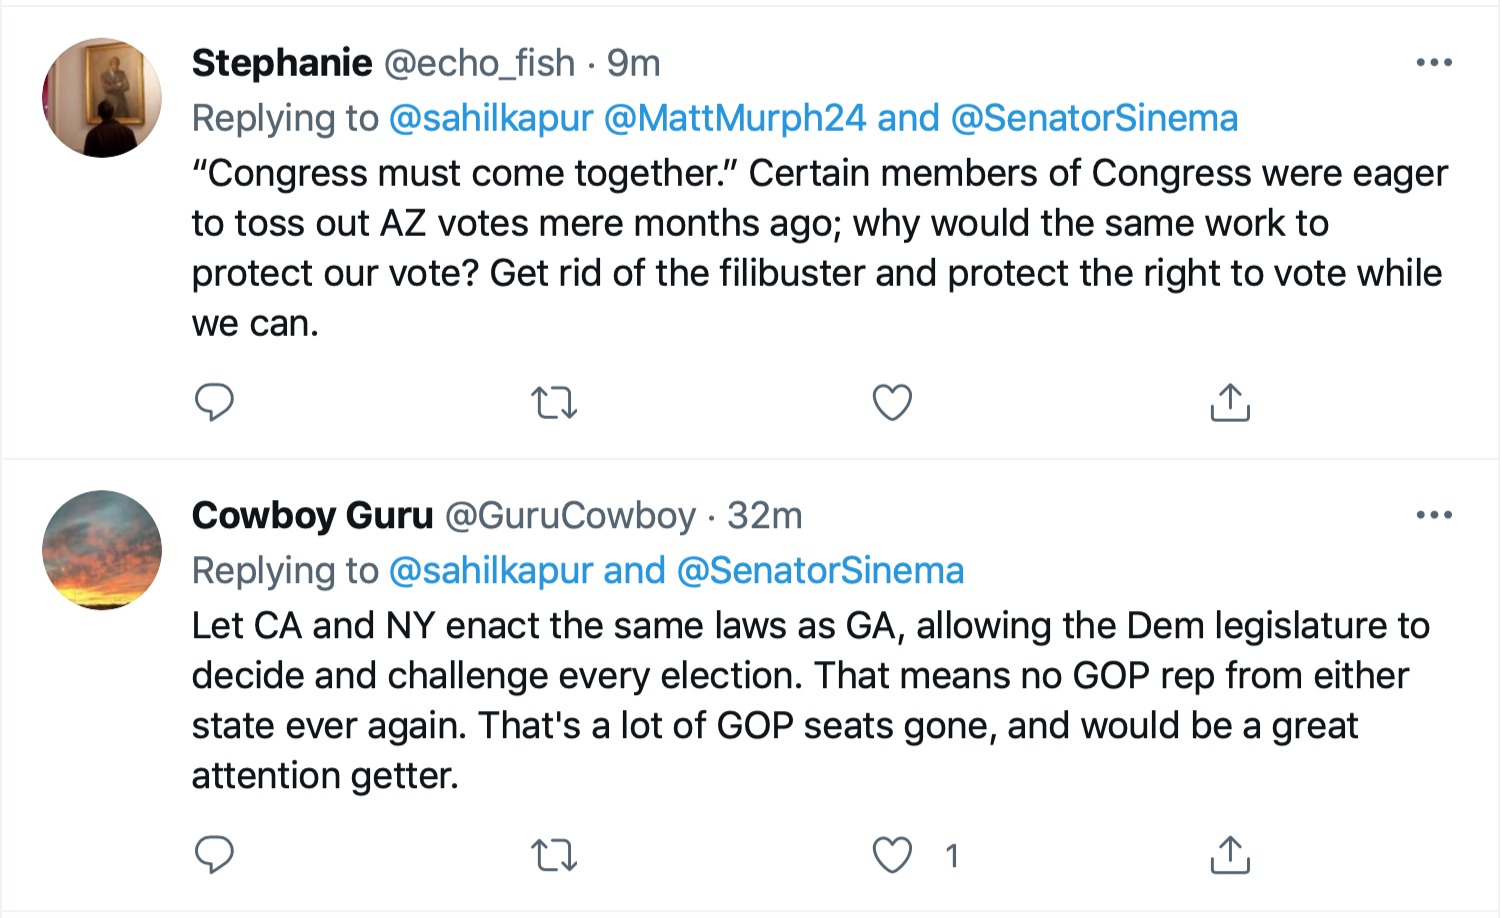 Screen-Shot-2021-07-01-at-4.34.34-PM Kyrsten Sinema Calls For Votings Rights Act After SCOTUS Ruling Civil Rights Featured Politics Top Stories Twitter